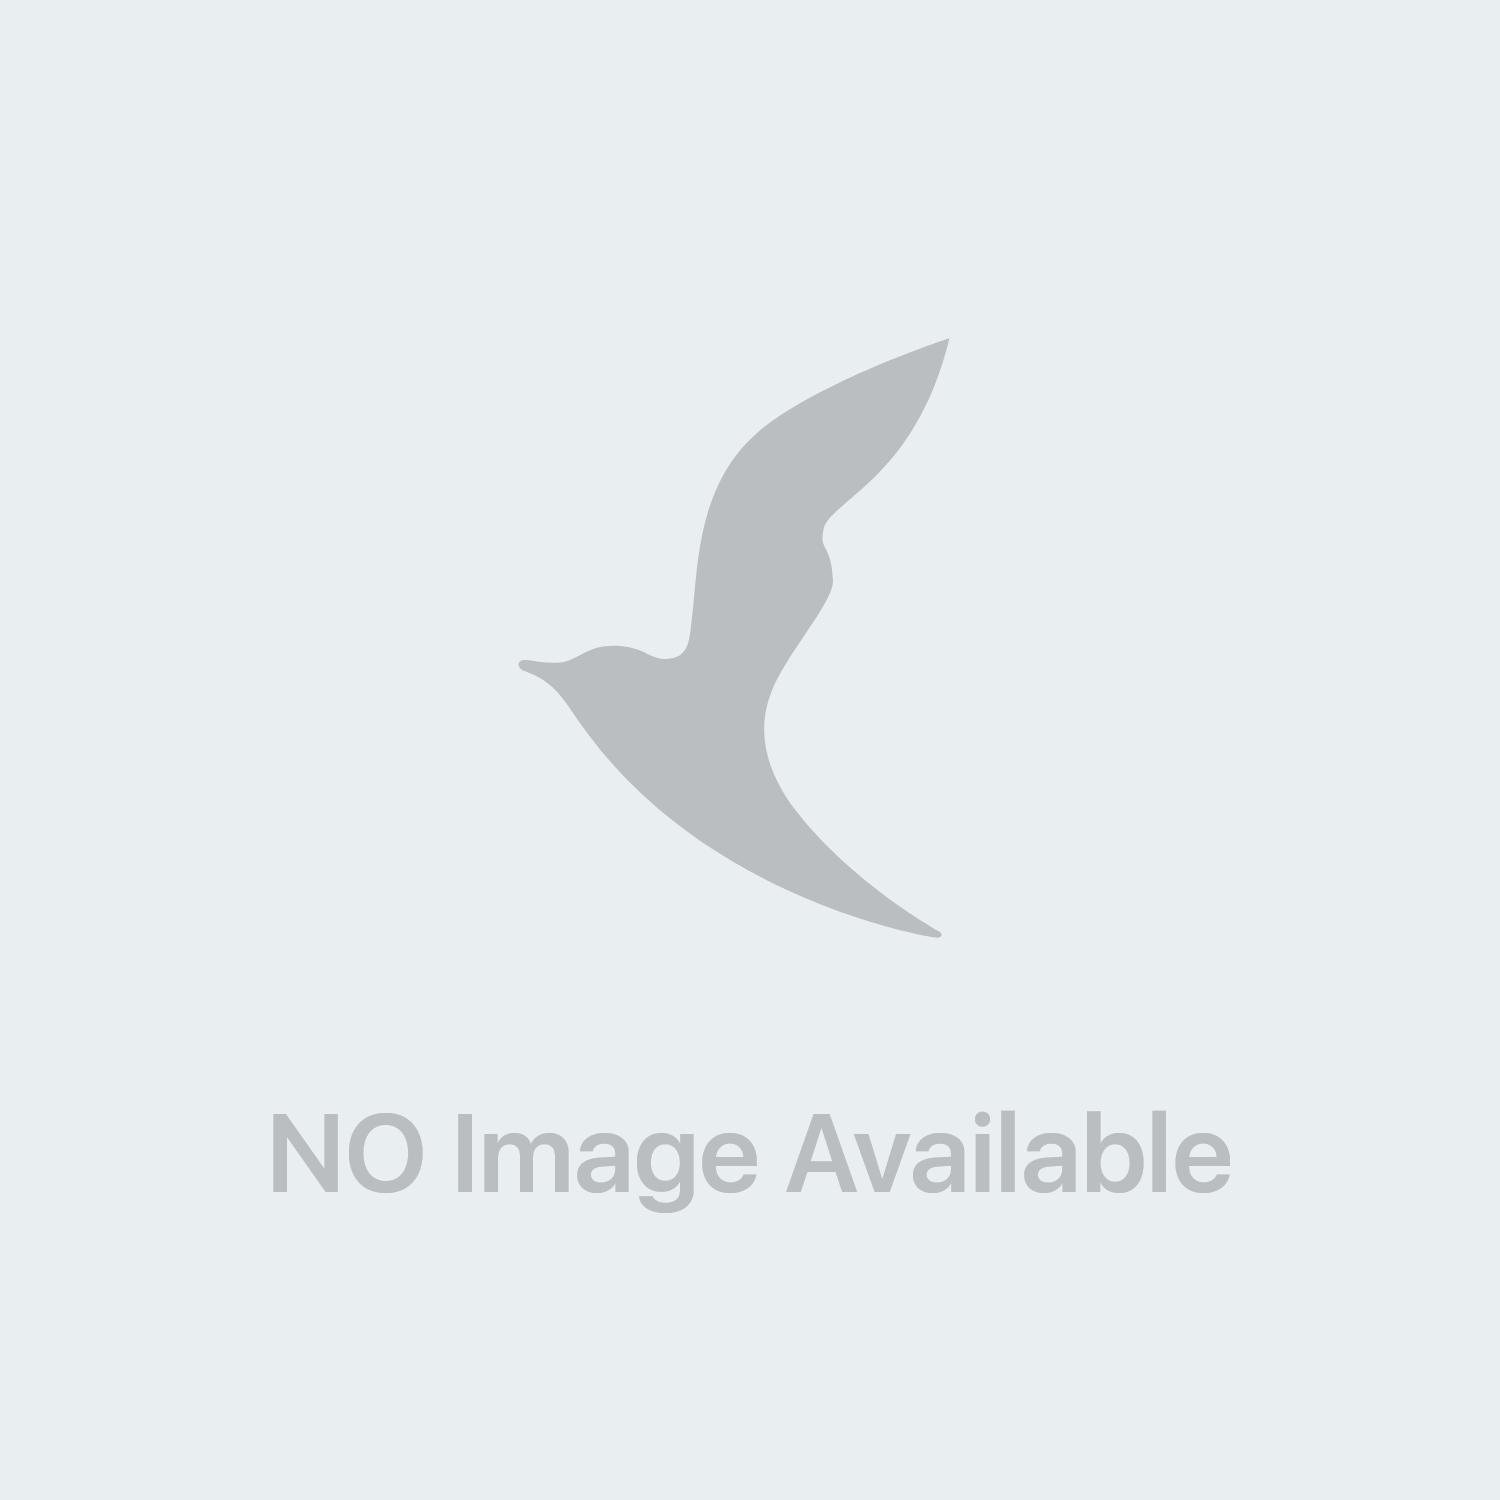 Fristamin 7 Compresse 10 mg